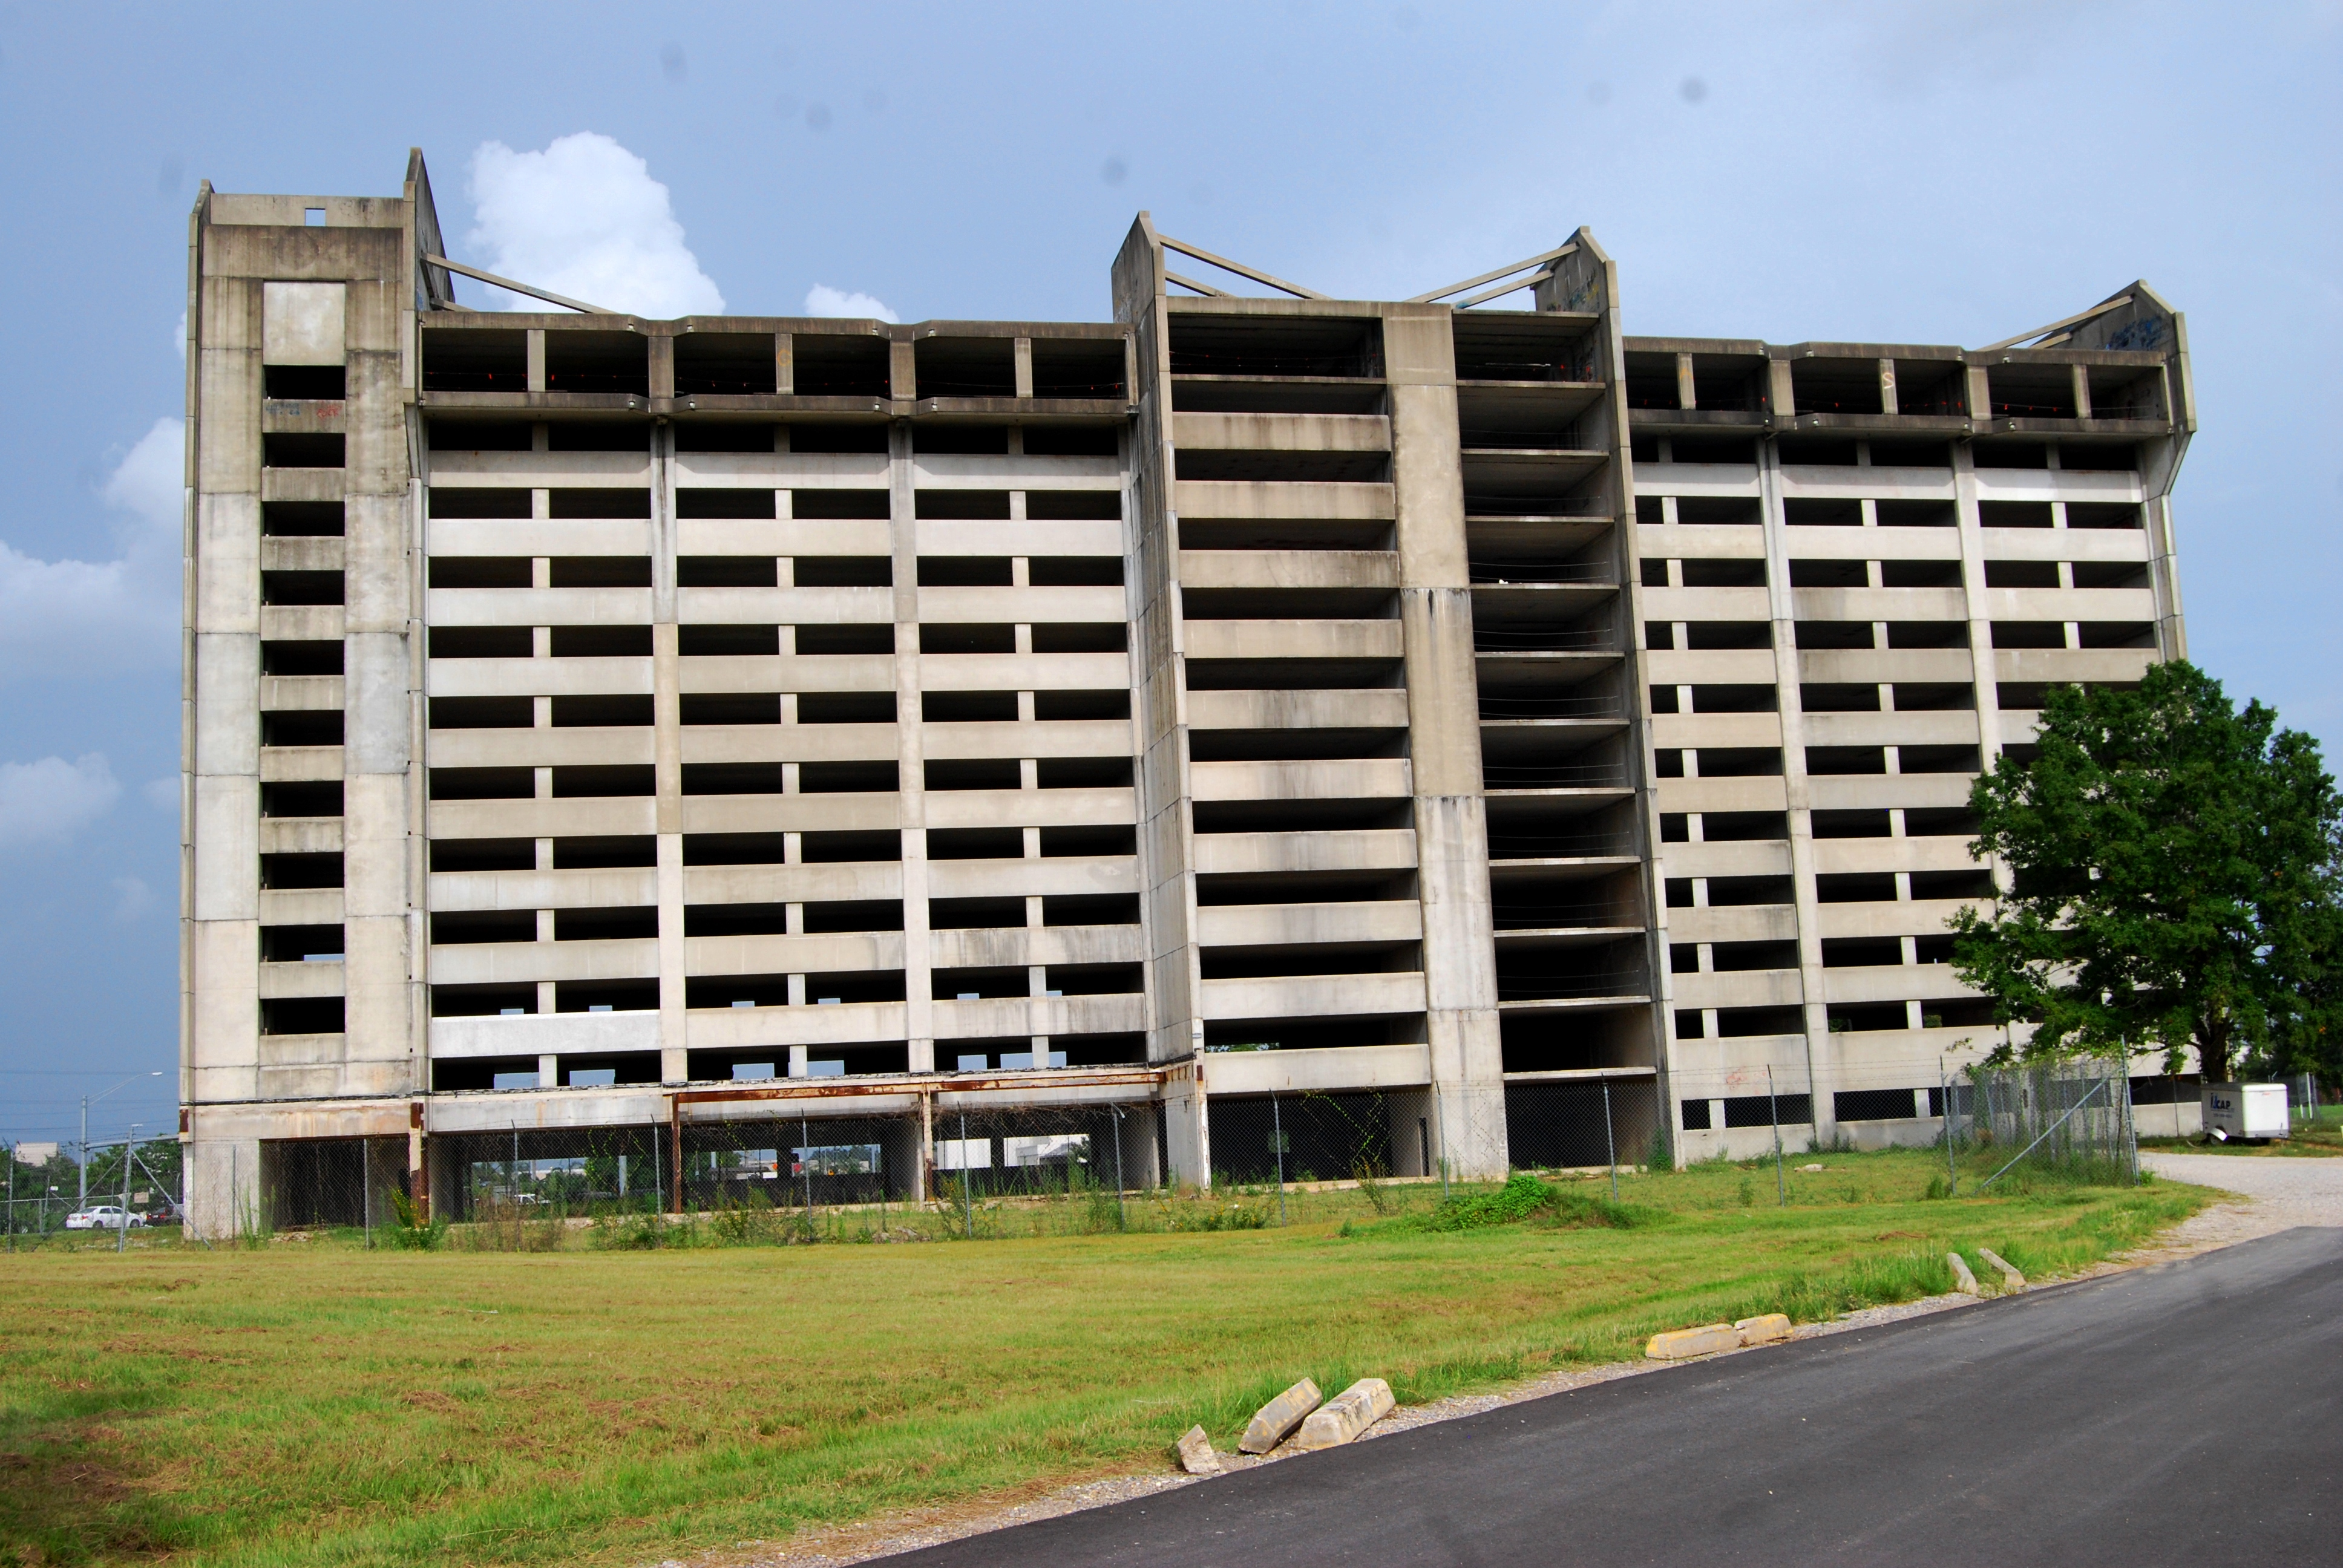 File:Jimmy Swaggart ministry building abandoned, Baton Rouge